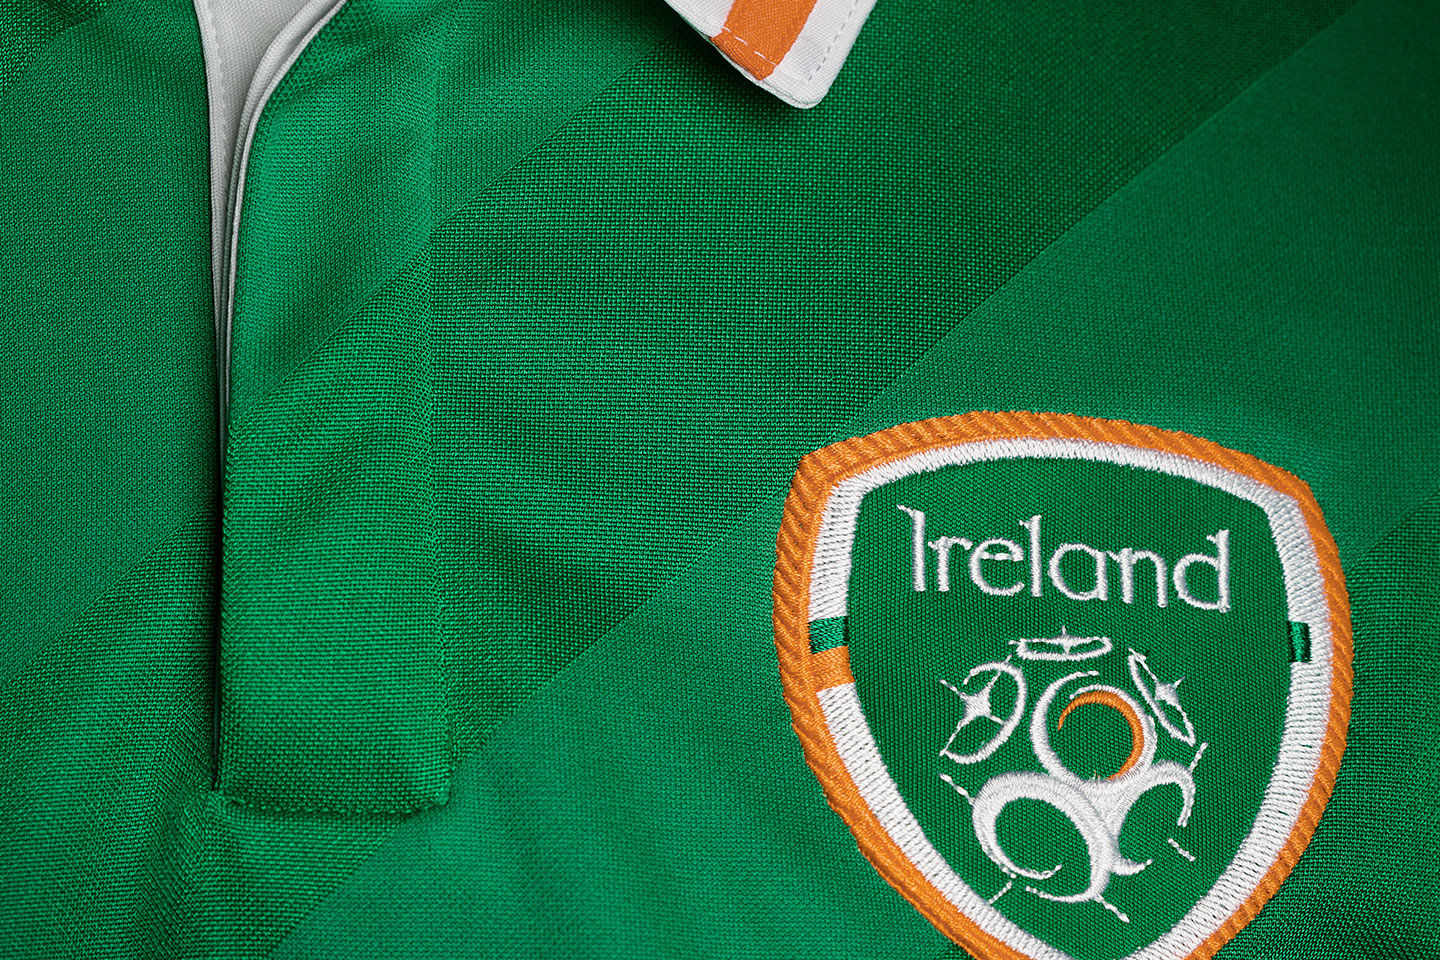 Get the new Ireland jersey free plus 15% off your home energy.*